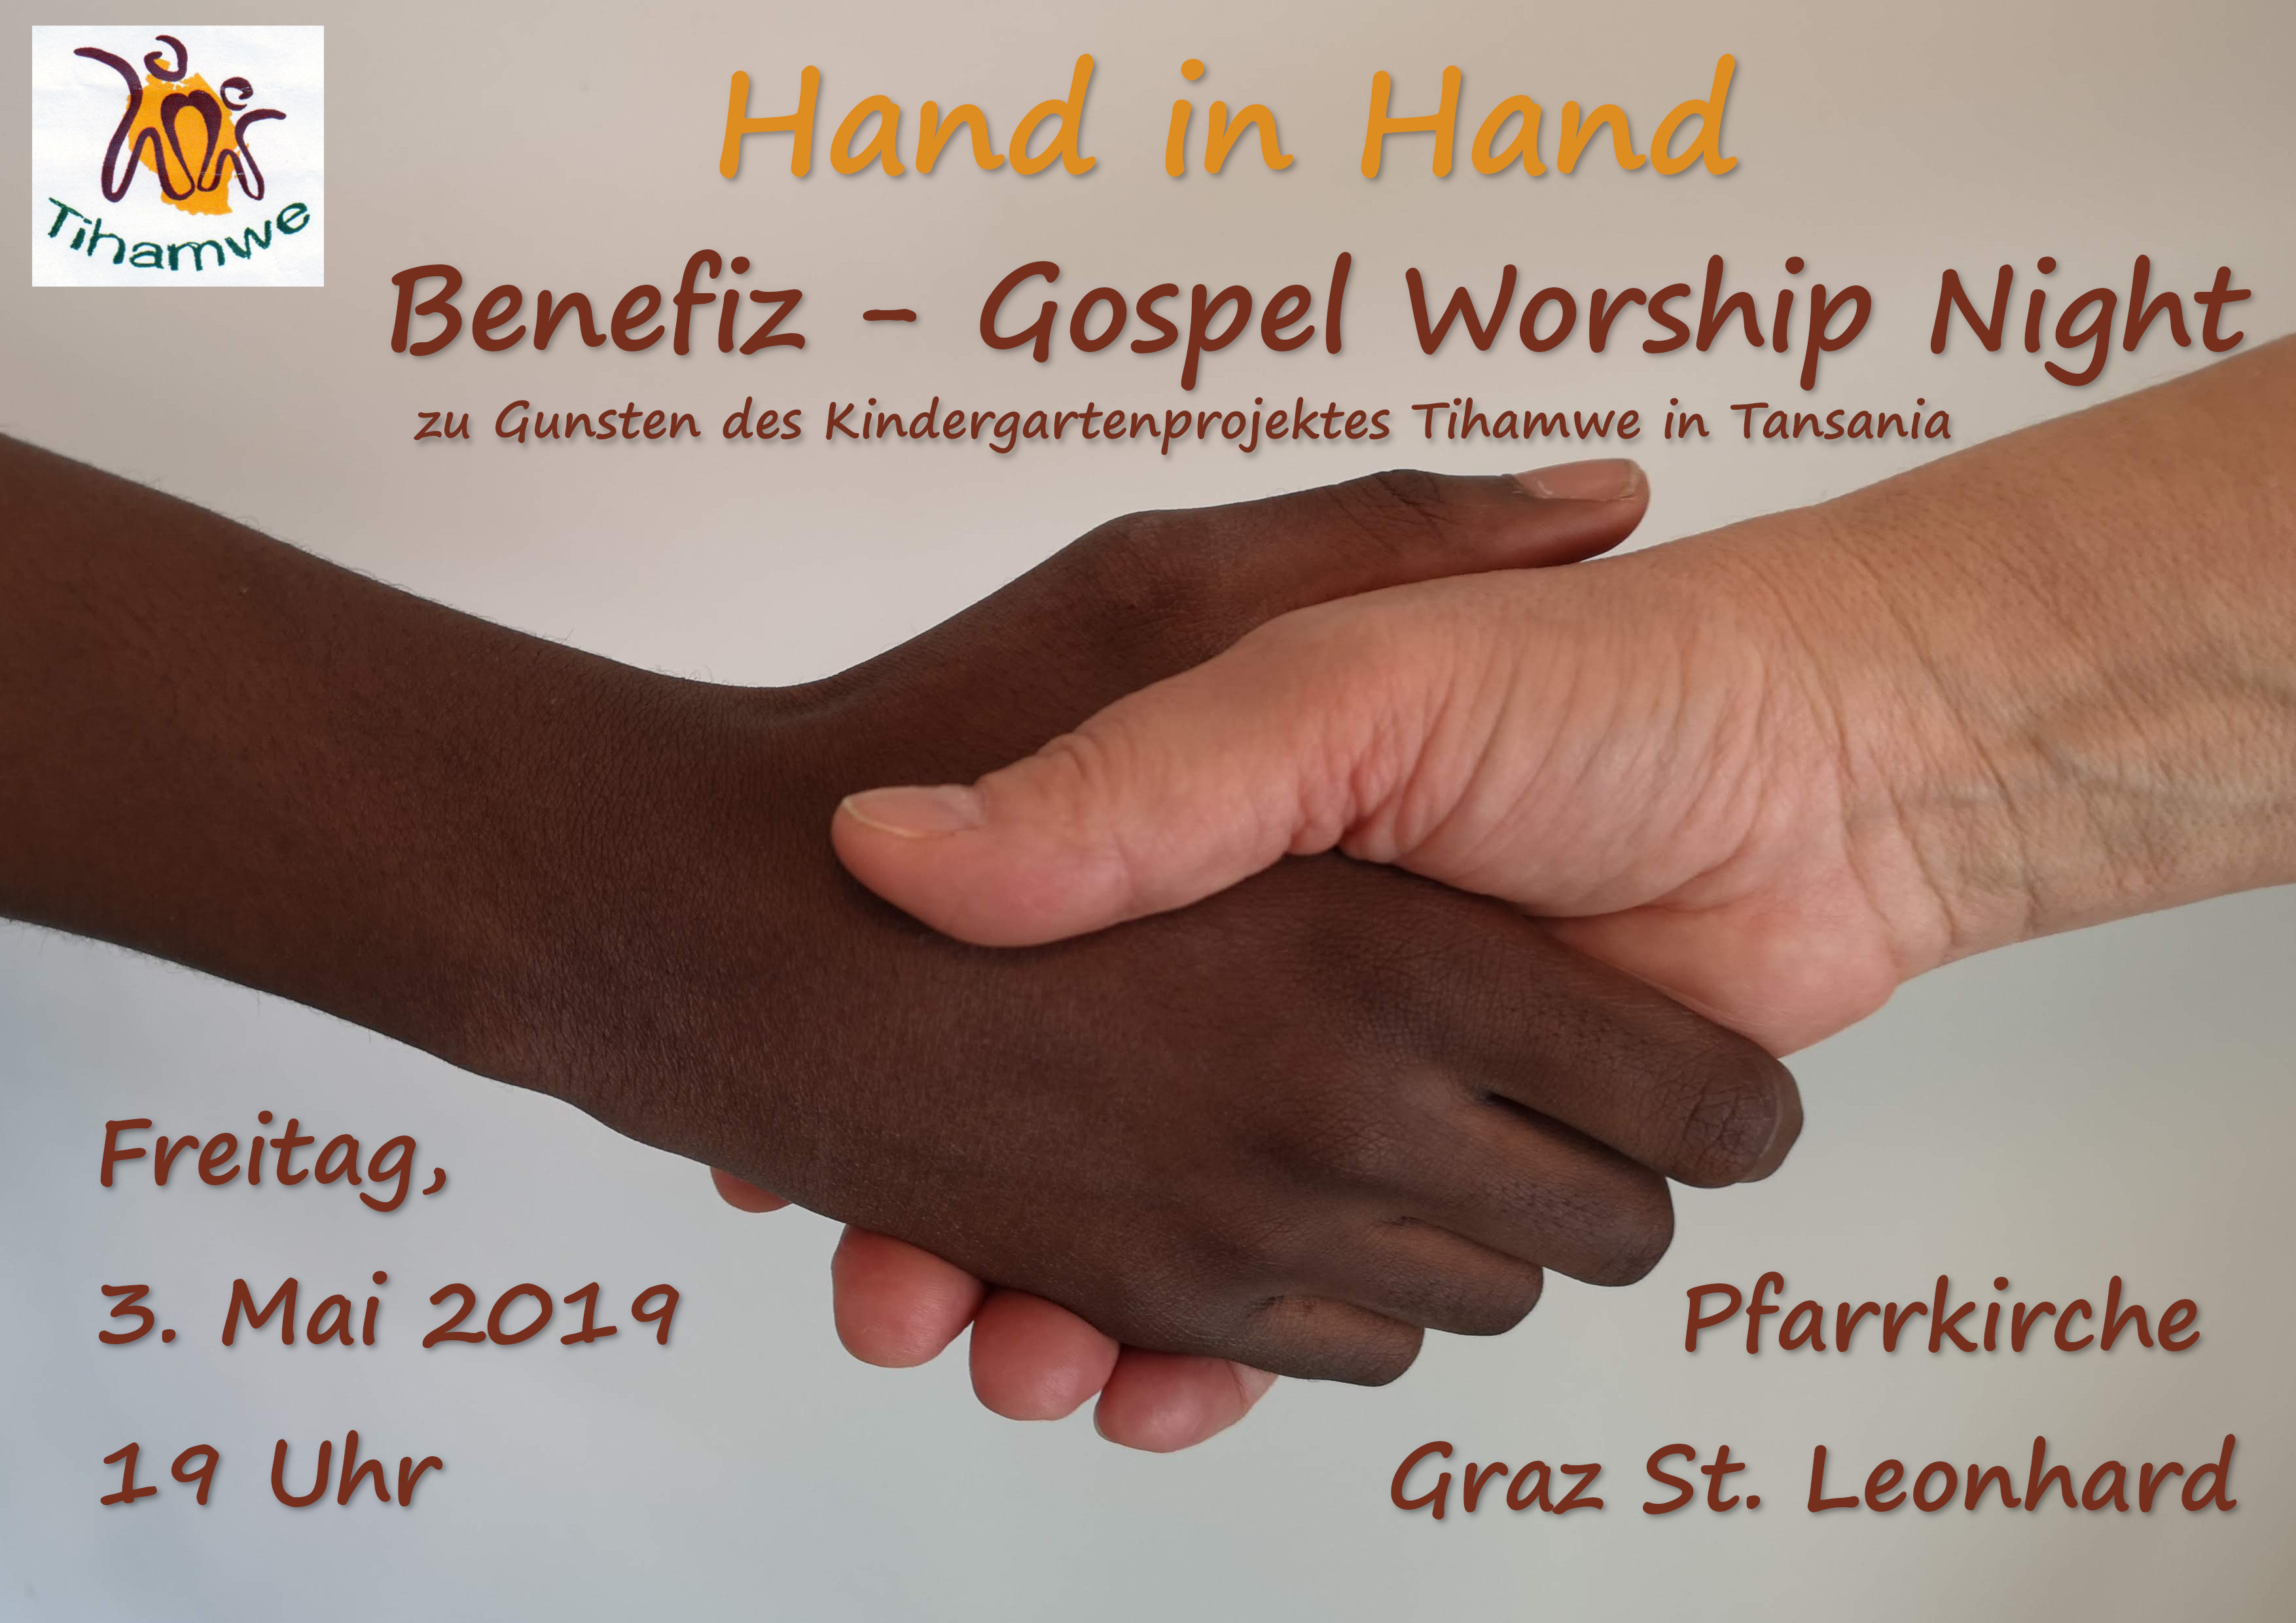 plakat 2019 05 03 benefiz gospel worship night graz leonhard